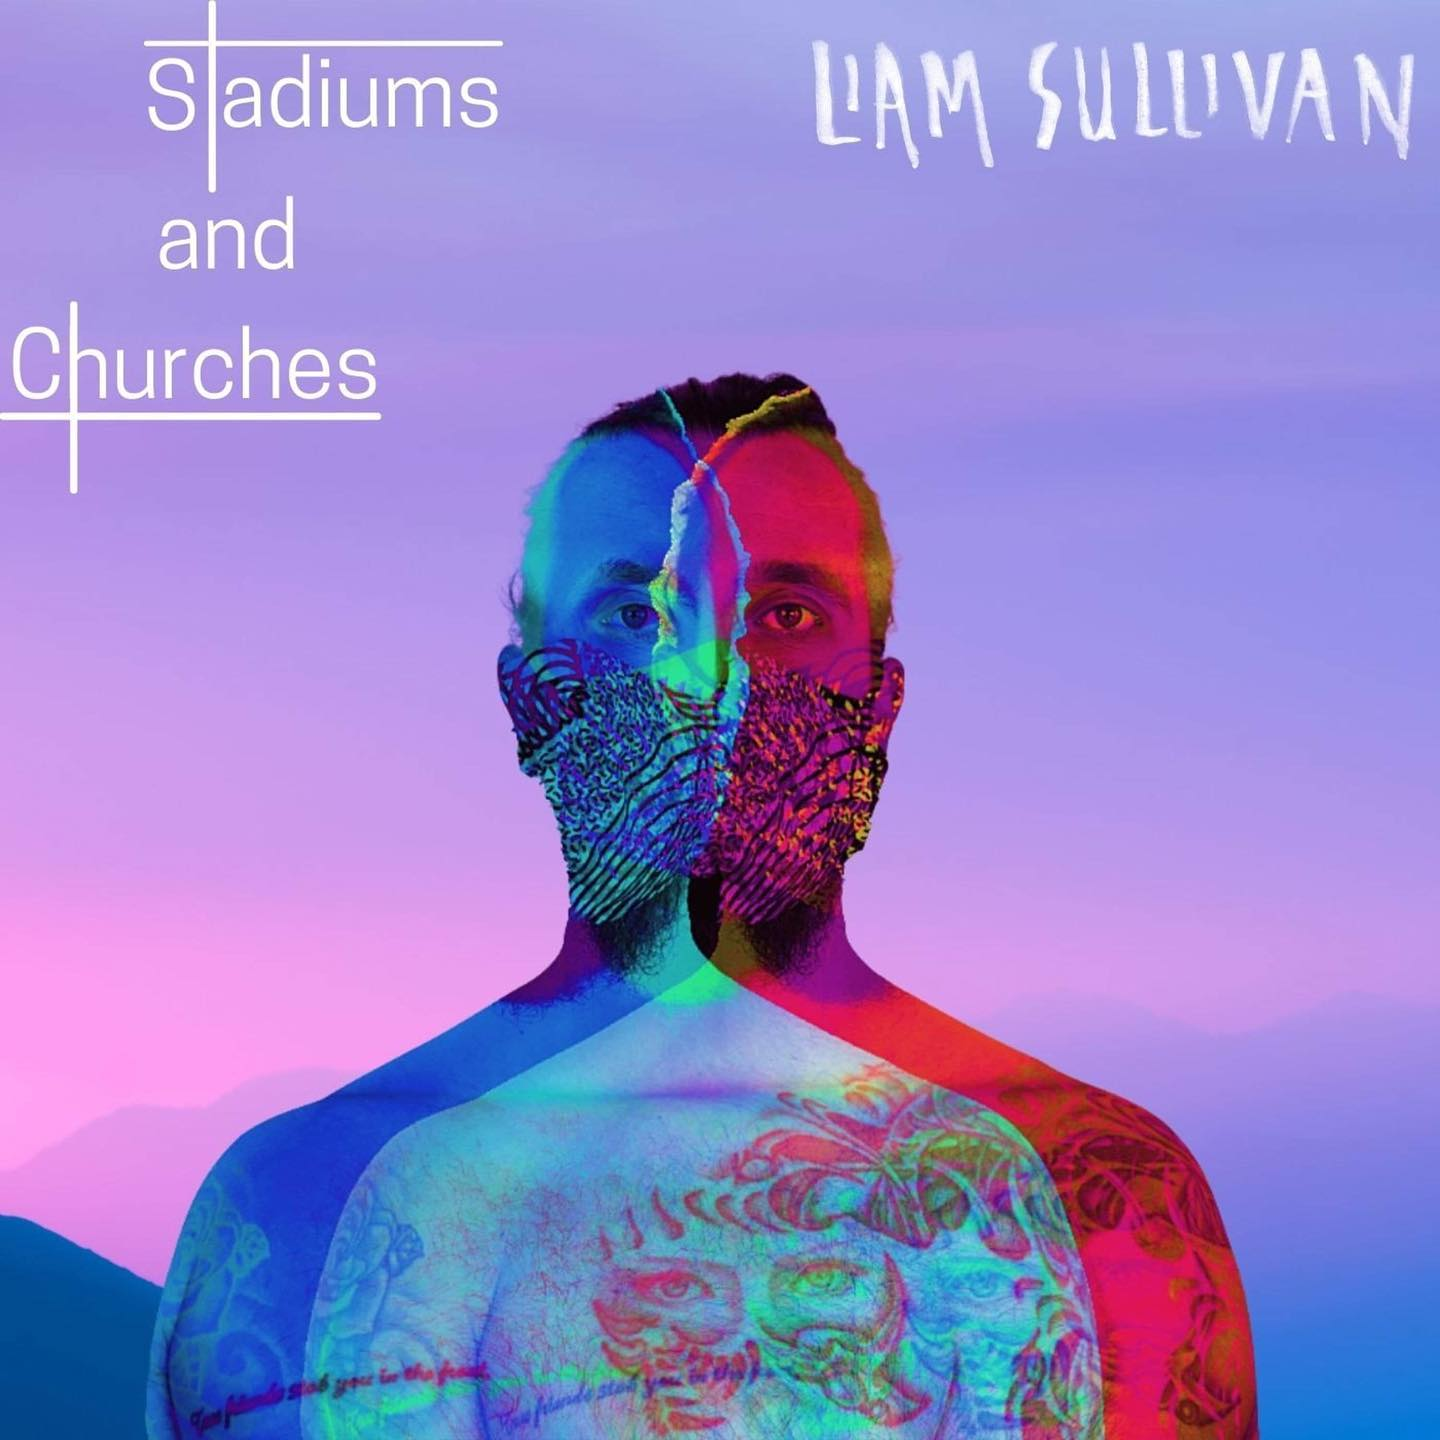 "Speaking to Leeds-Based Artist Liam Sullivan About His Latest Single ""Stadiums and Churches"""